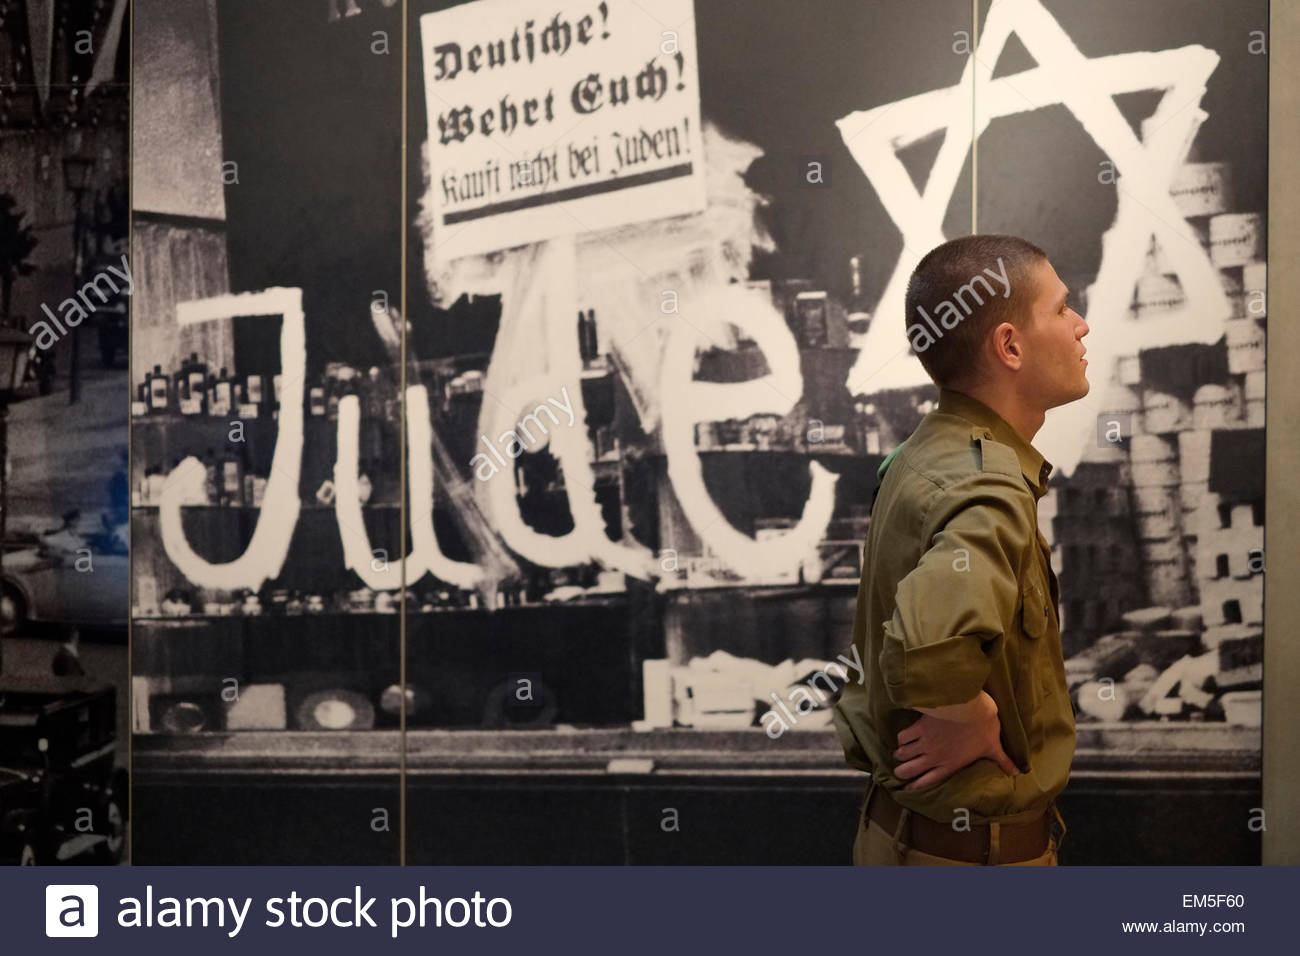 Jerusalem. 16th April, 2015. An Israeli soldier next to an old anti semitic graffiti displayed in Yad Vashem History - Stock Image